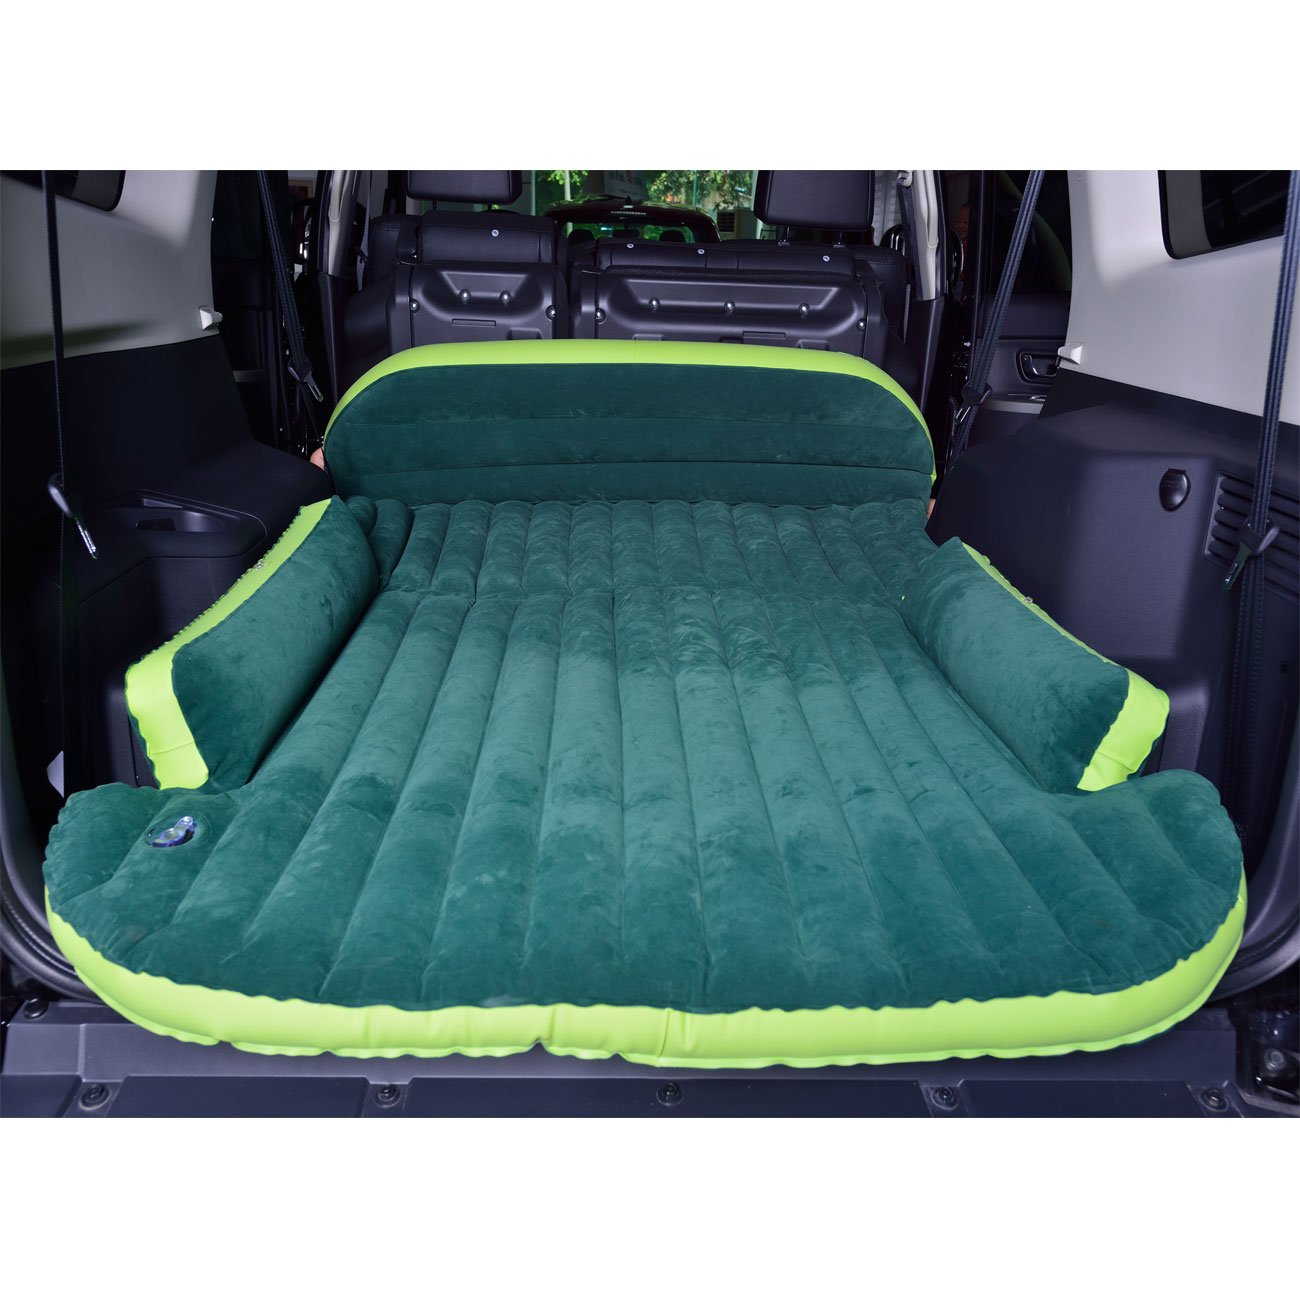 Backseat Inflatable Bed Amazoncom Only Mobile Inflation Travel Thicker Back Seat Cushion